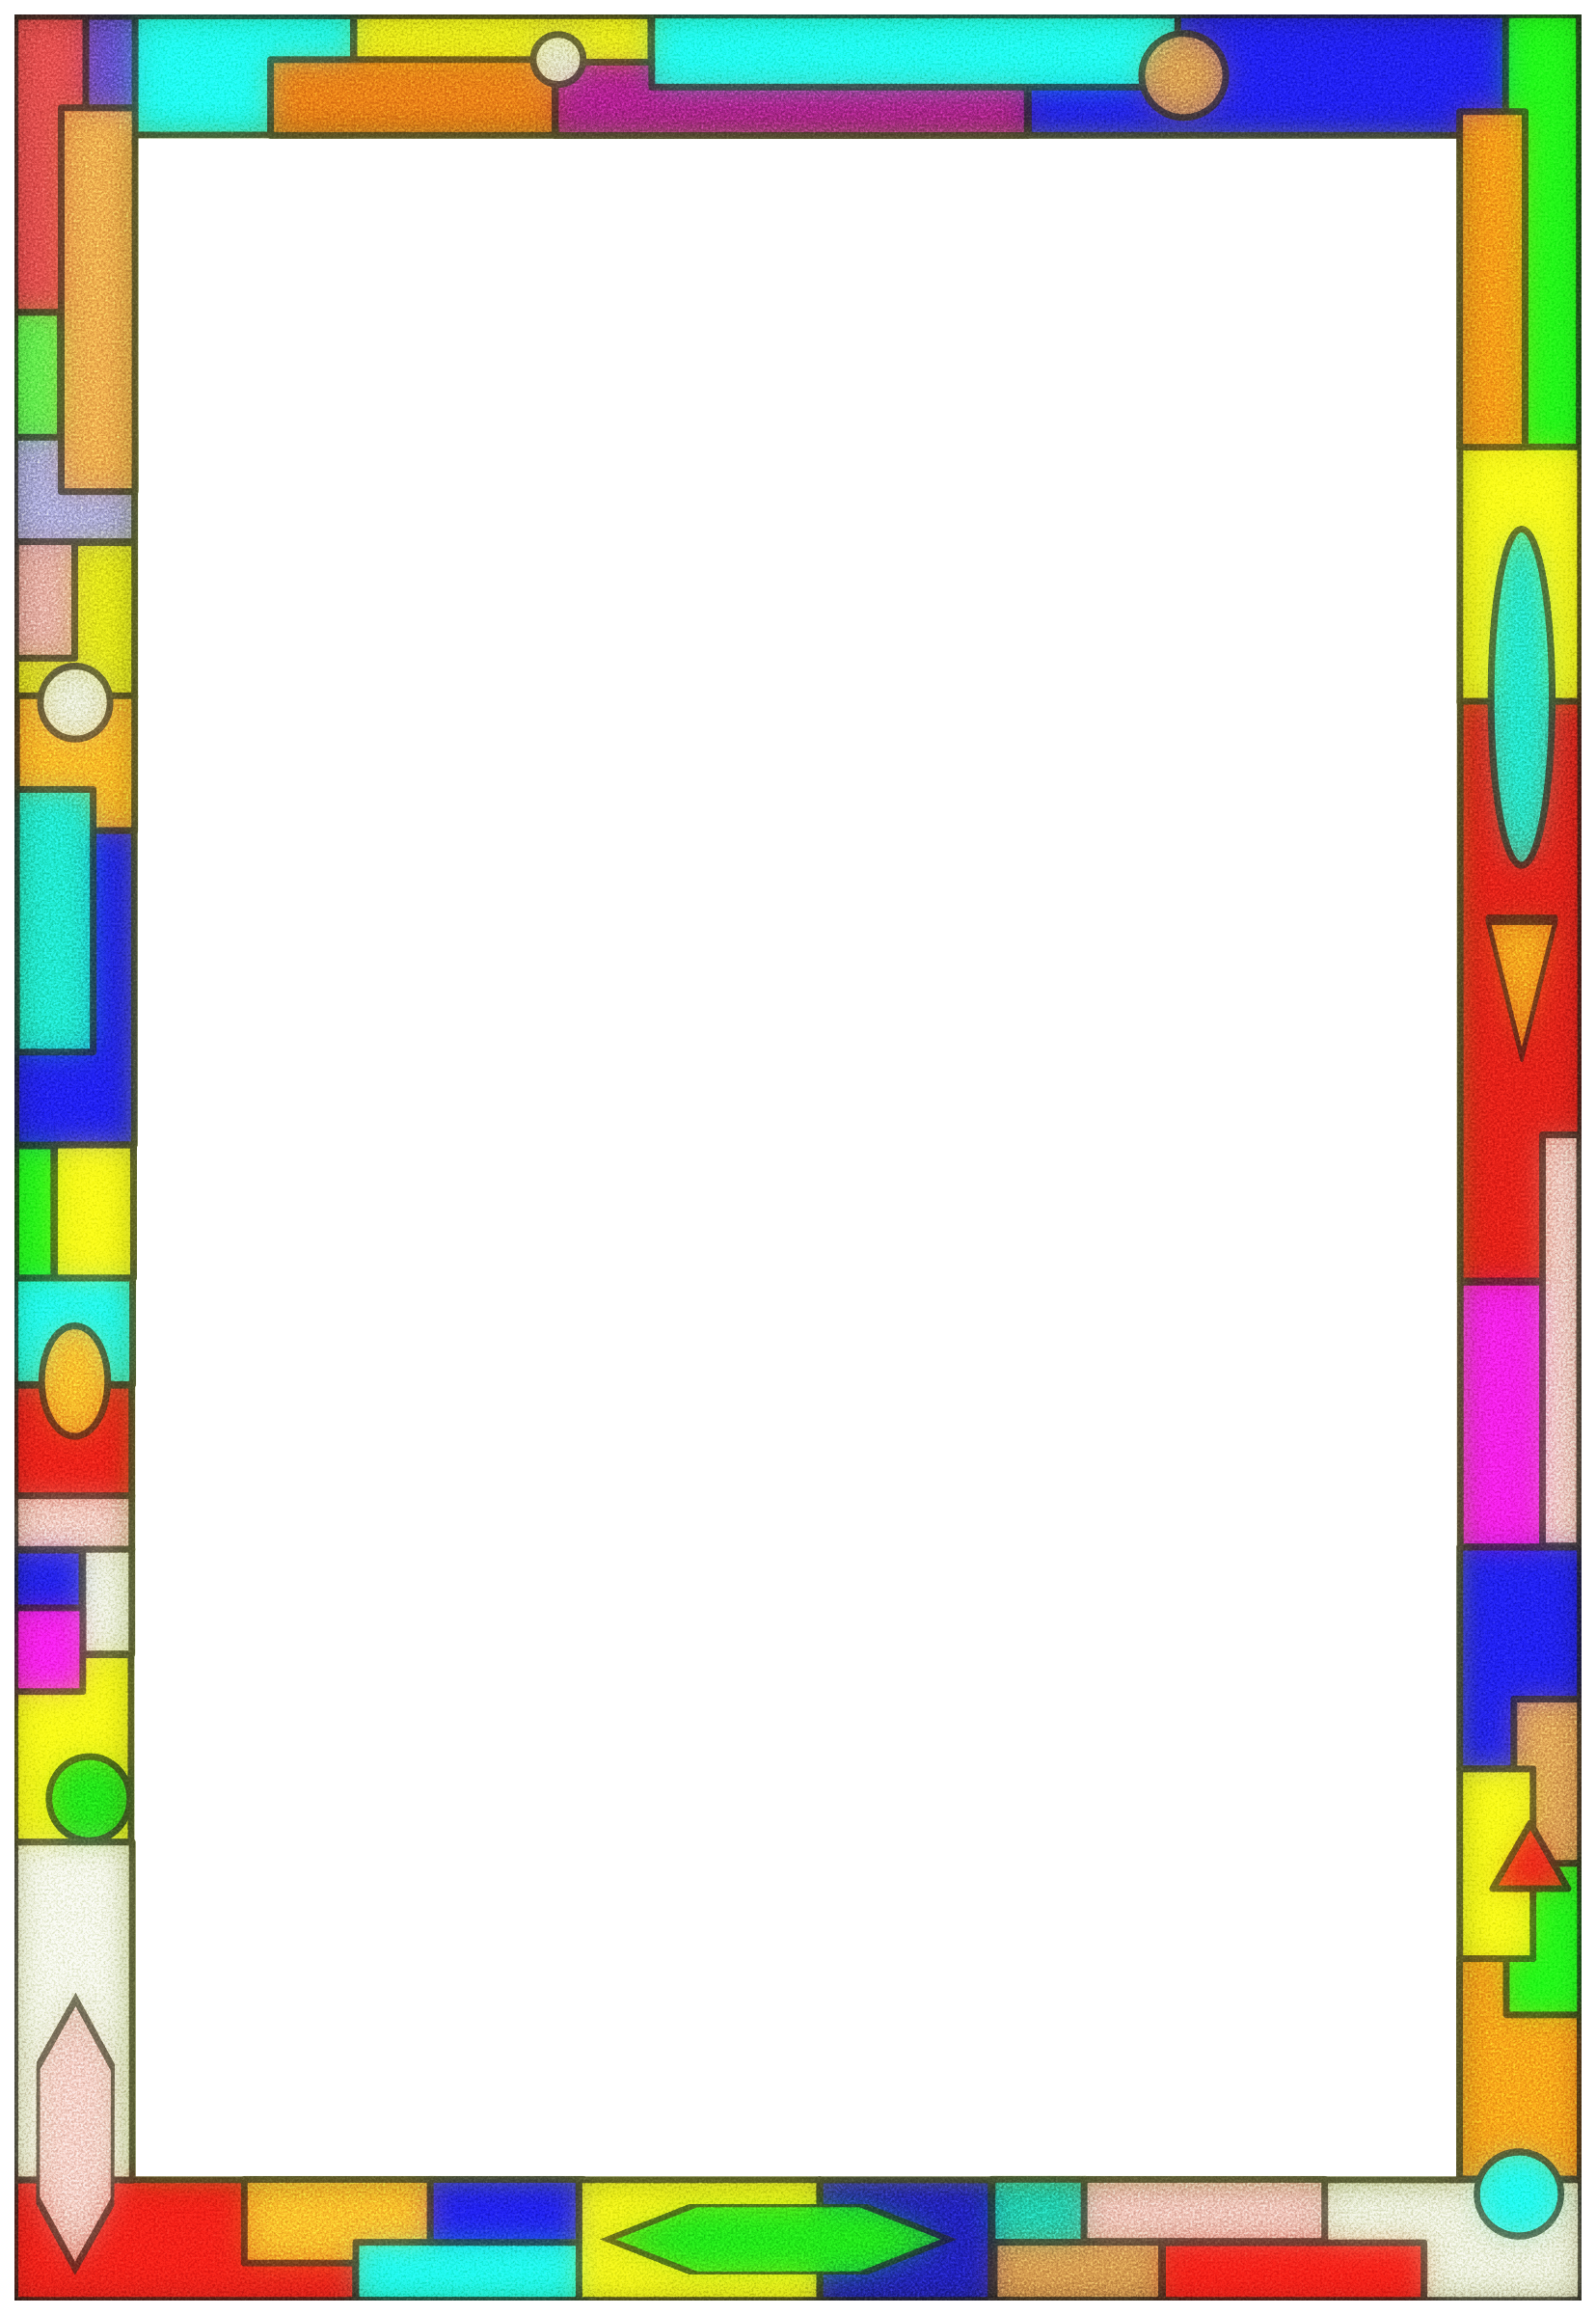 Stained glass border by. Ladder clipart frame colorful